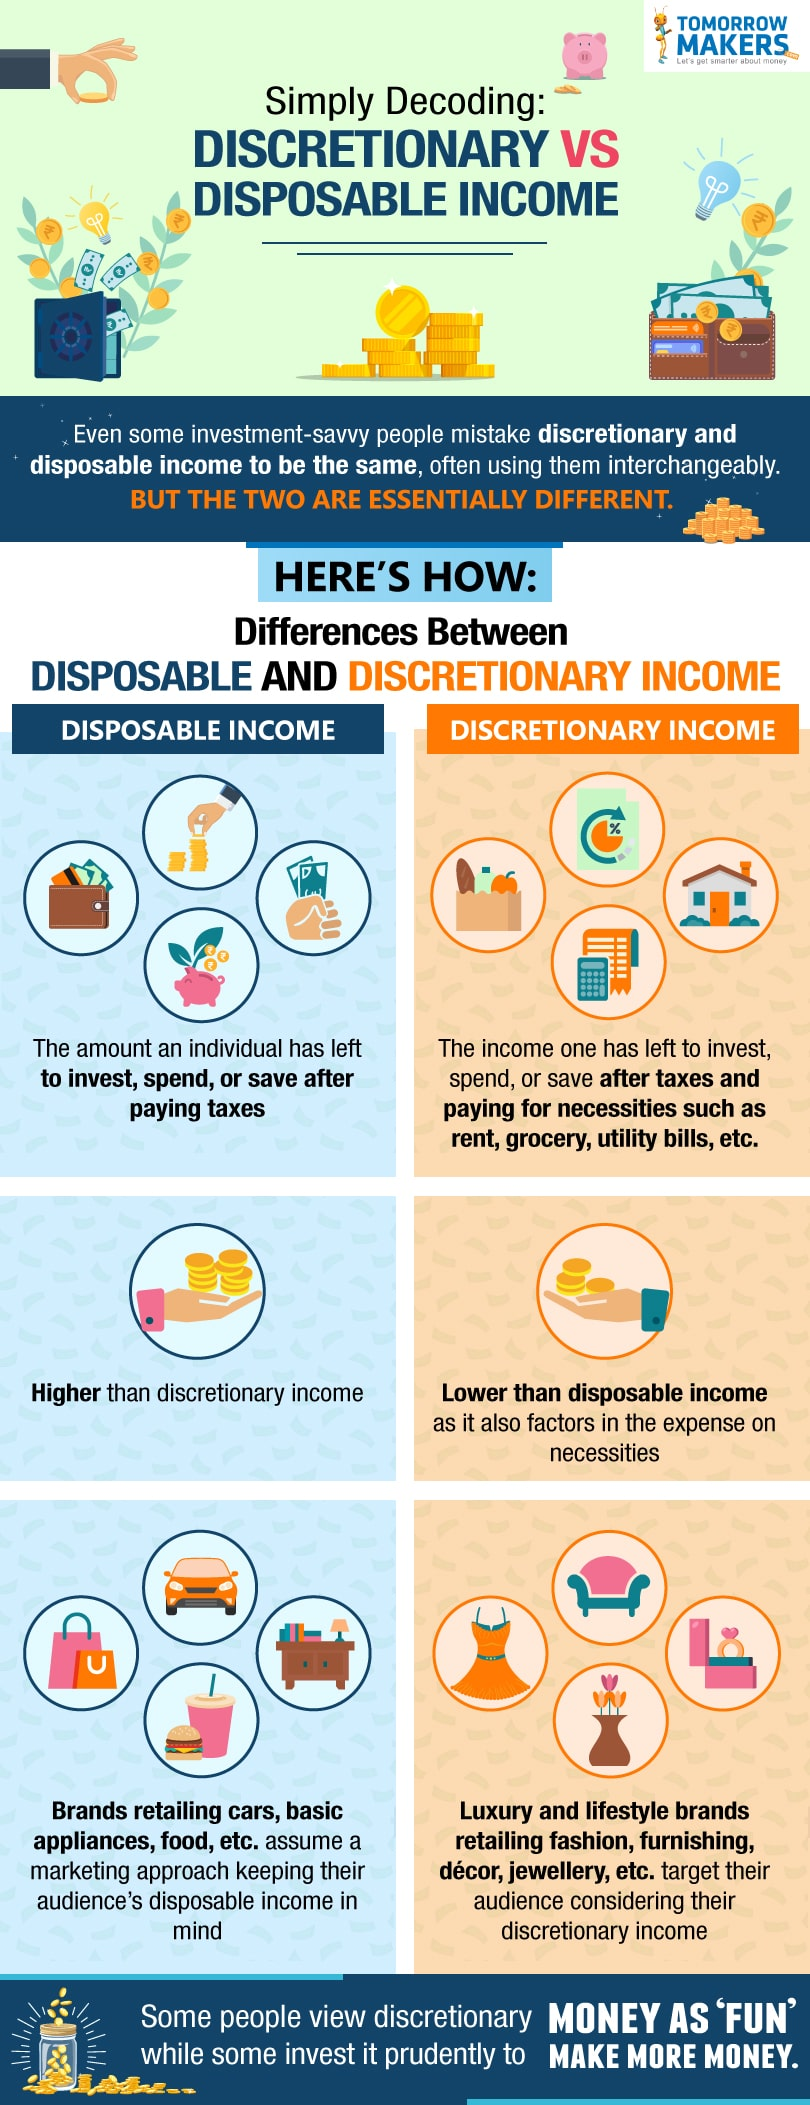 Simply decoding: Discretionary v/s disposable income